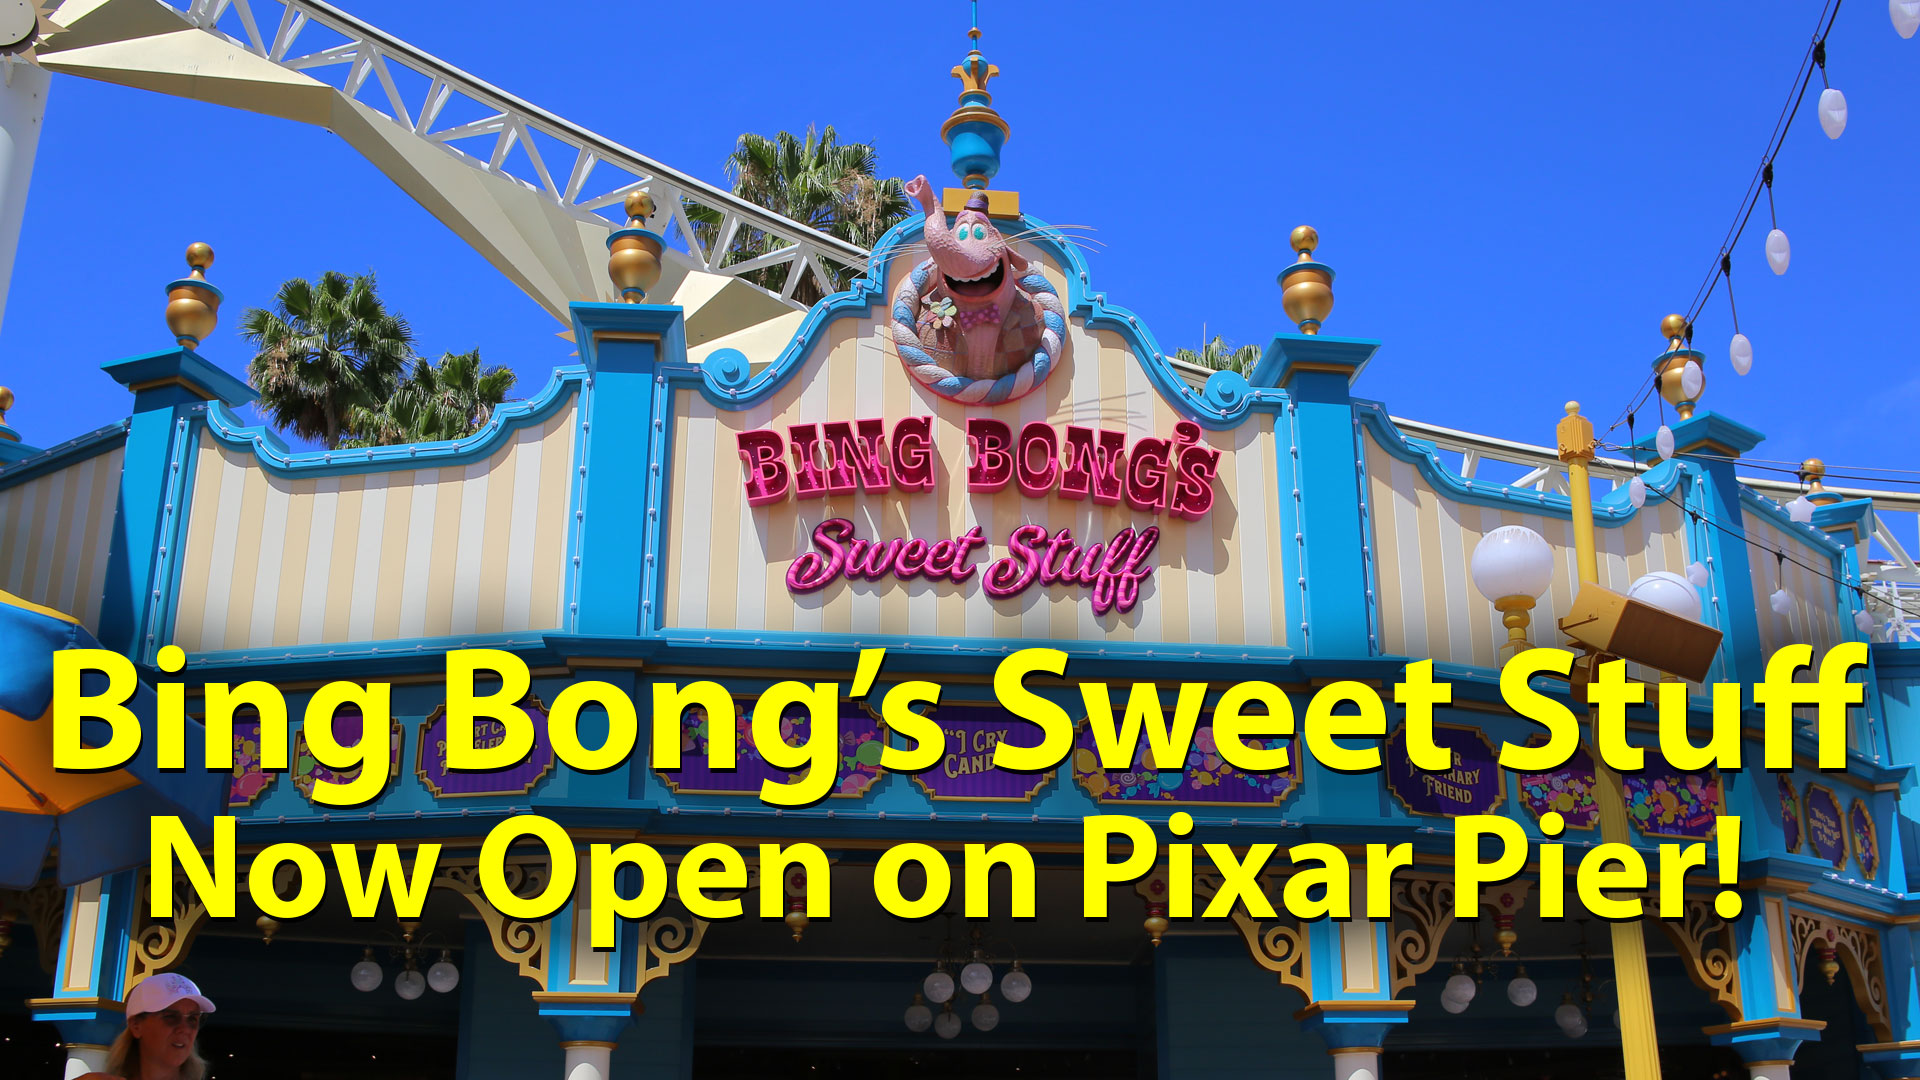 Bing Bong's Sweet Stuff